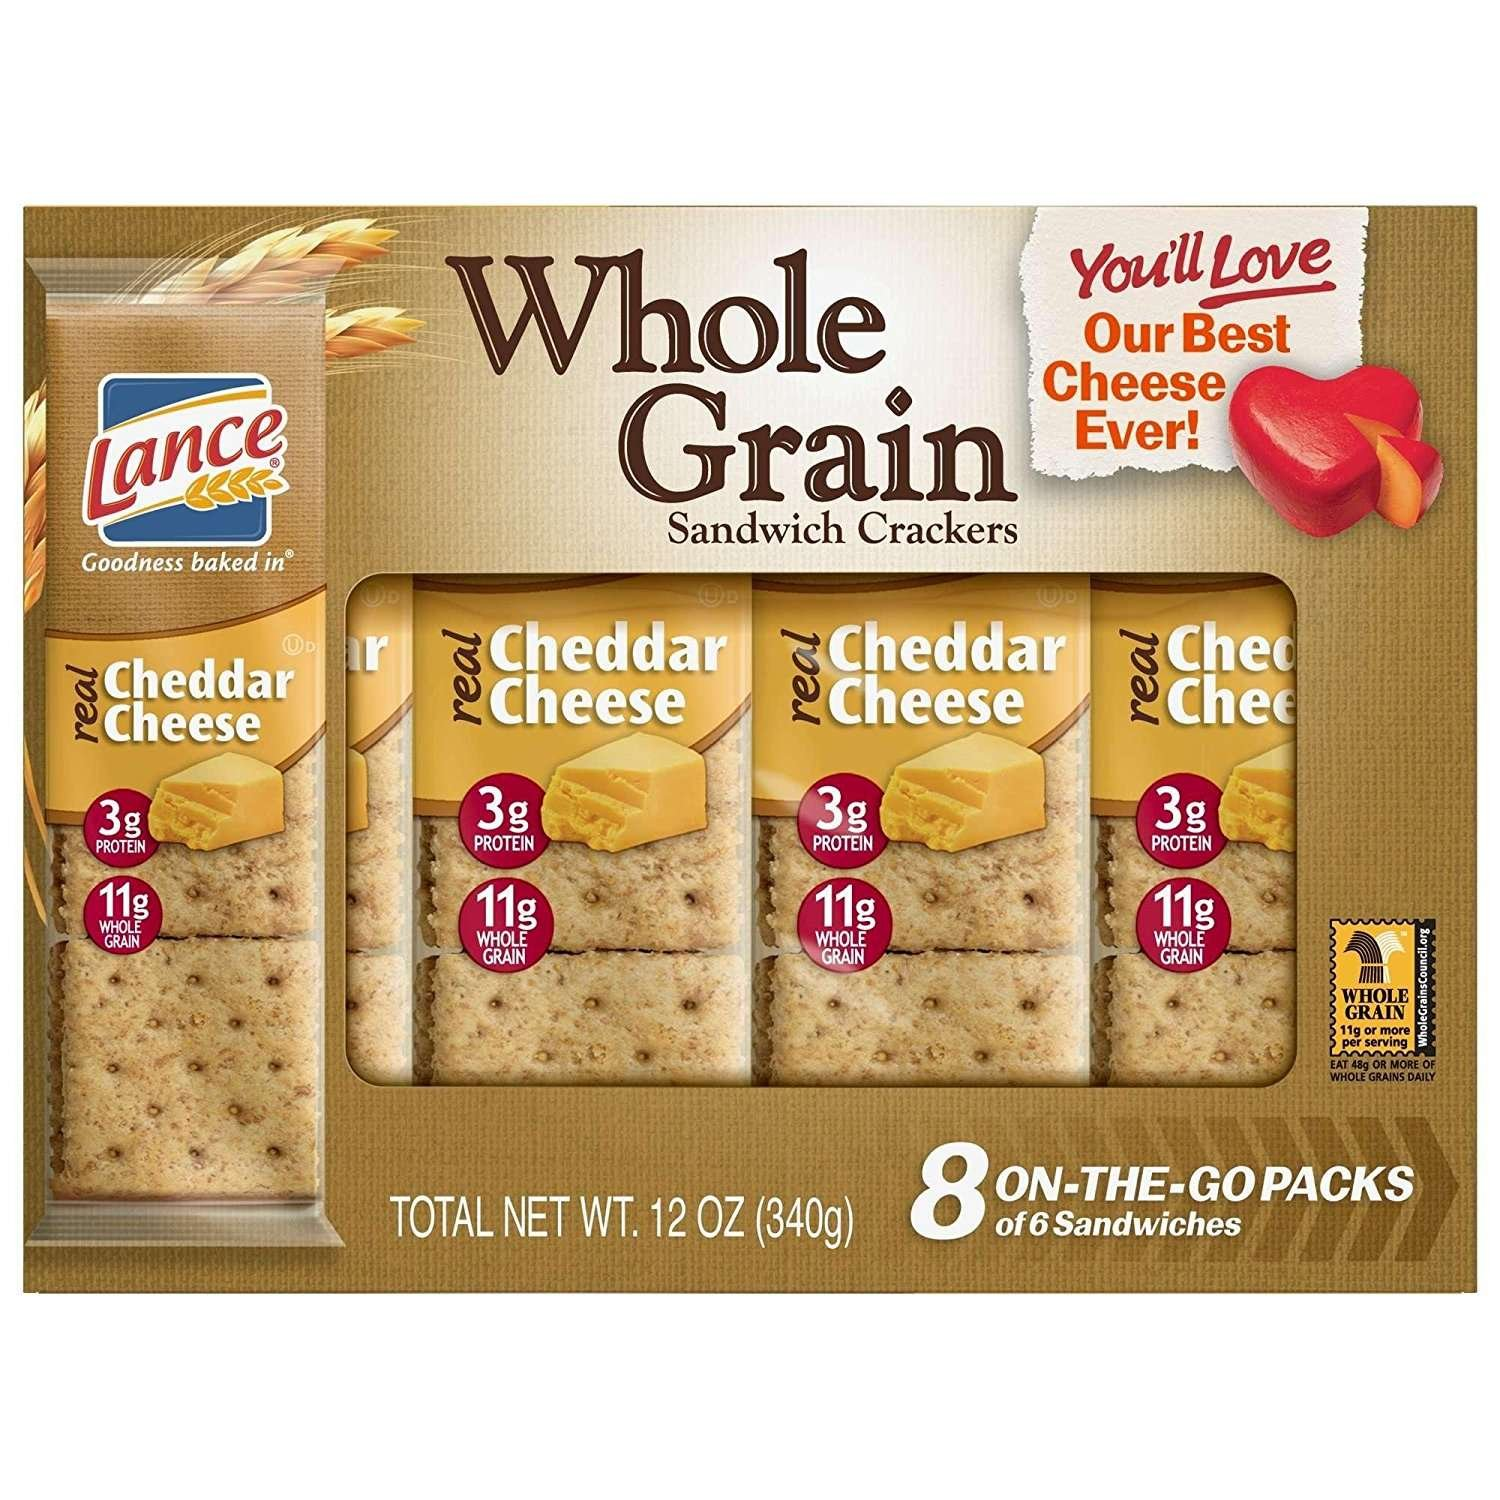 Lance Whole Grain Sandwich Crackers, Cheddar Cheese, 8 Count (Pack of 14) by Lance